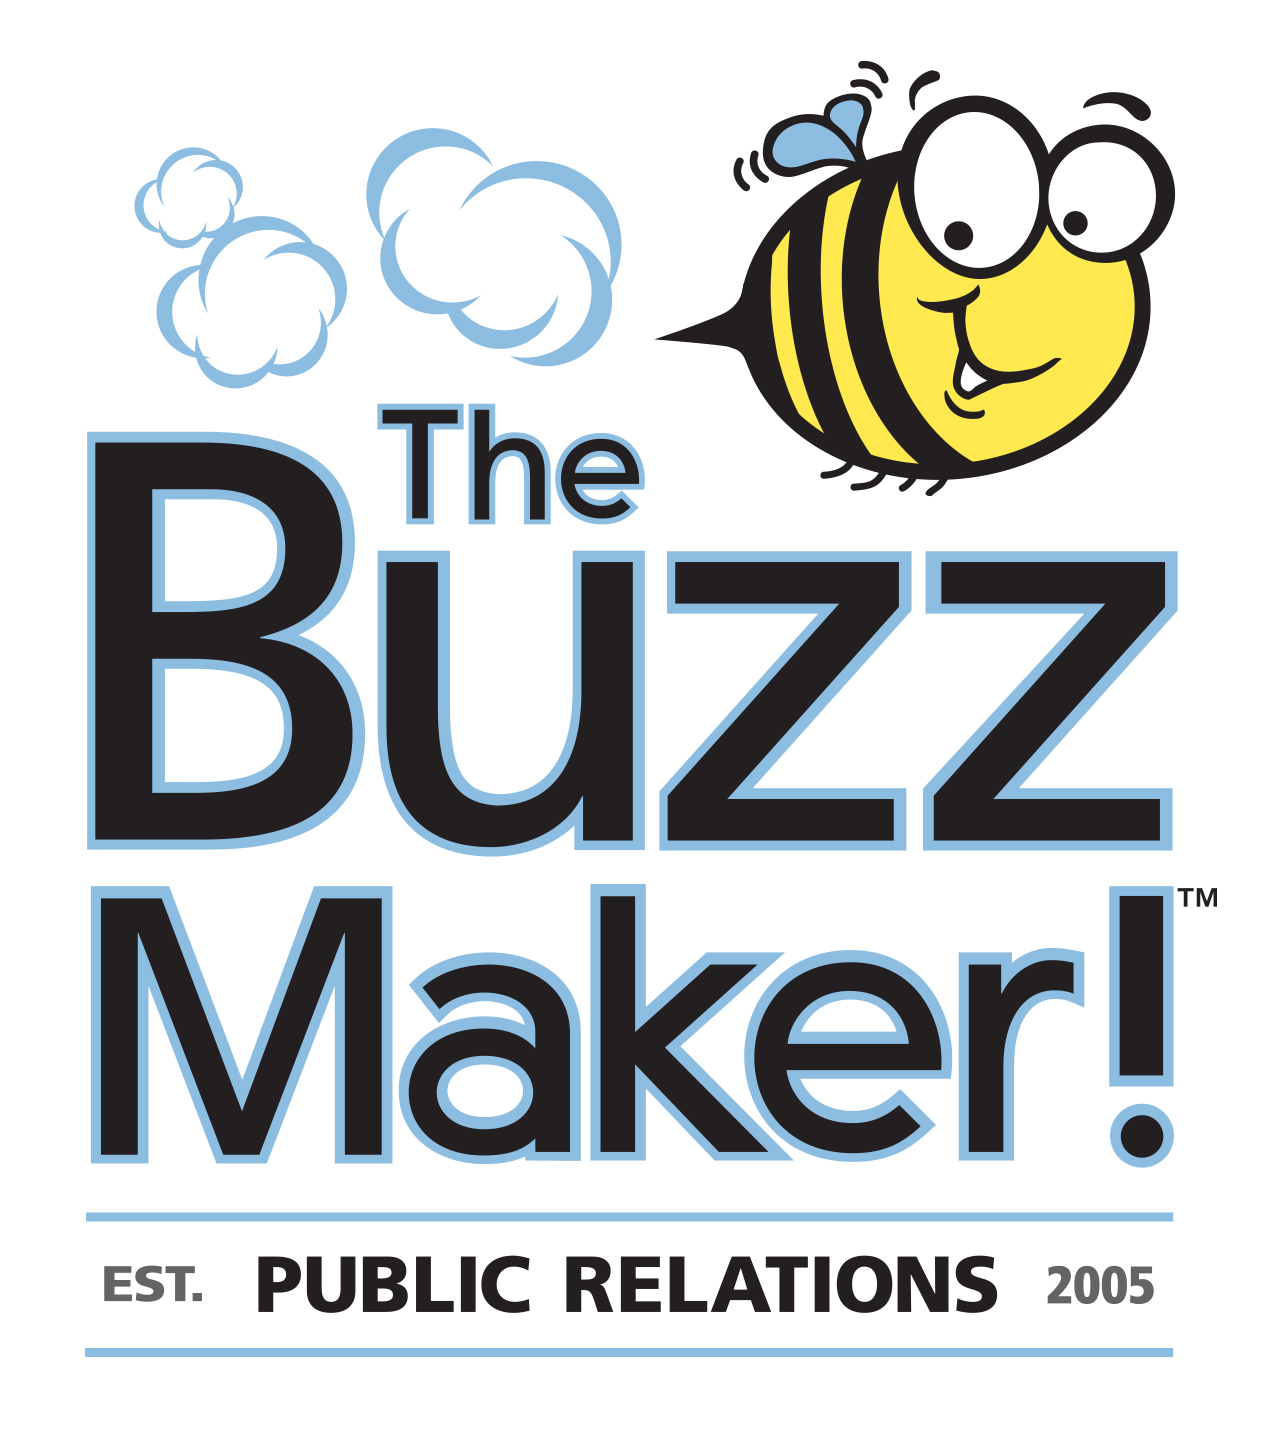 The Buzz Maker! Public RelationsCompassionate - The Buzz Maker! - Ohio  Public Relations 64981120a08